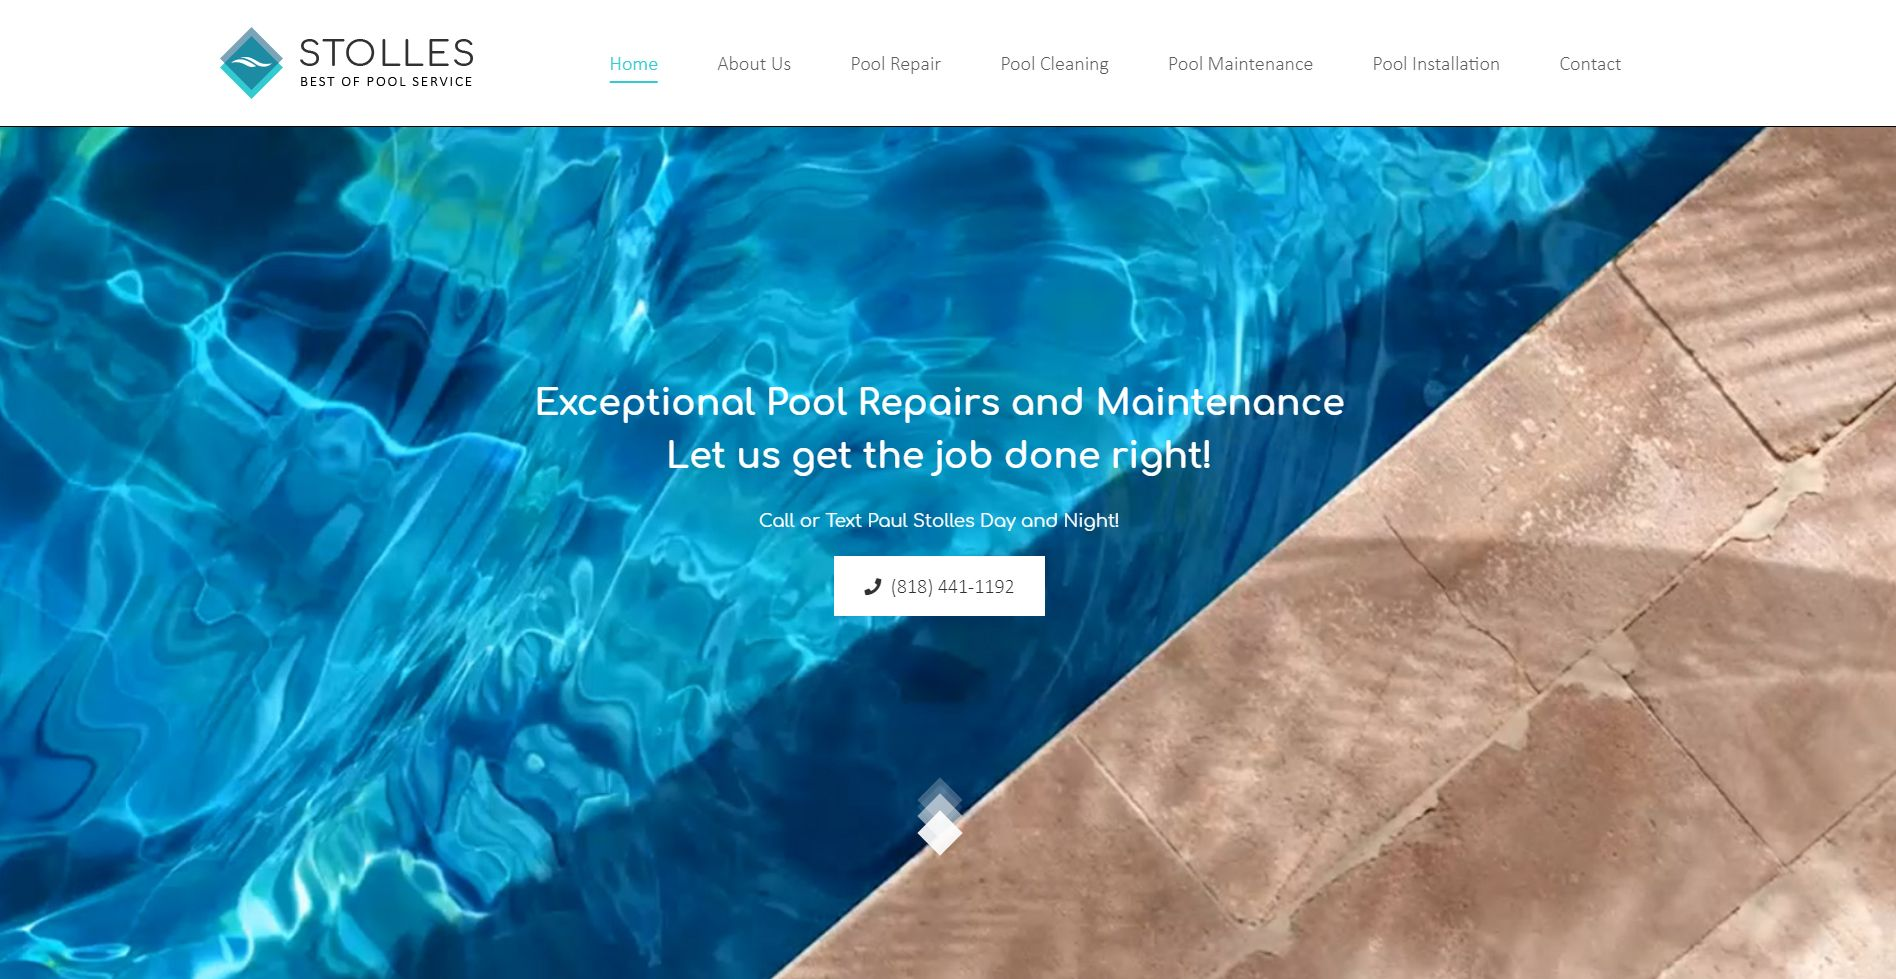 Stolles Best of Pool Service Website